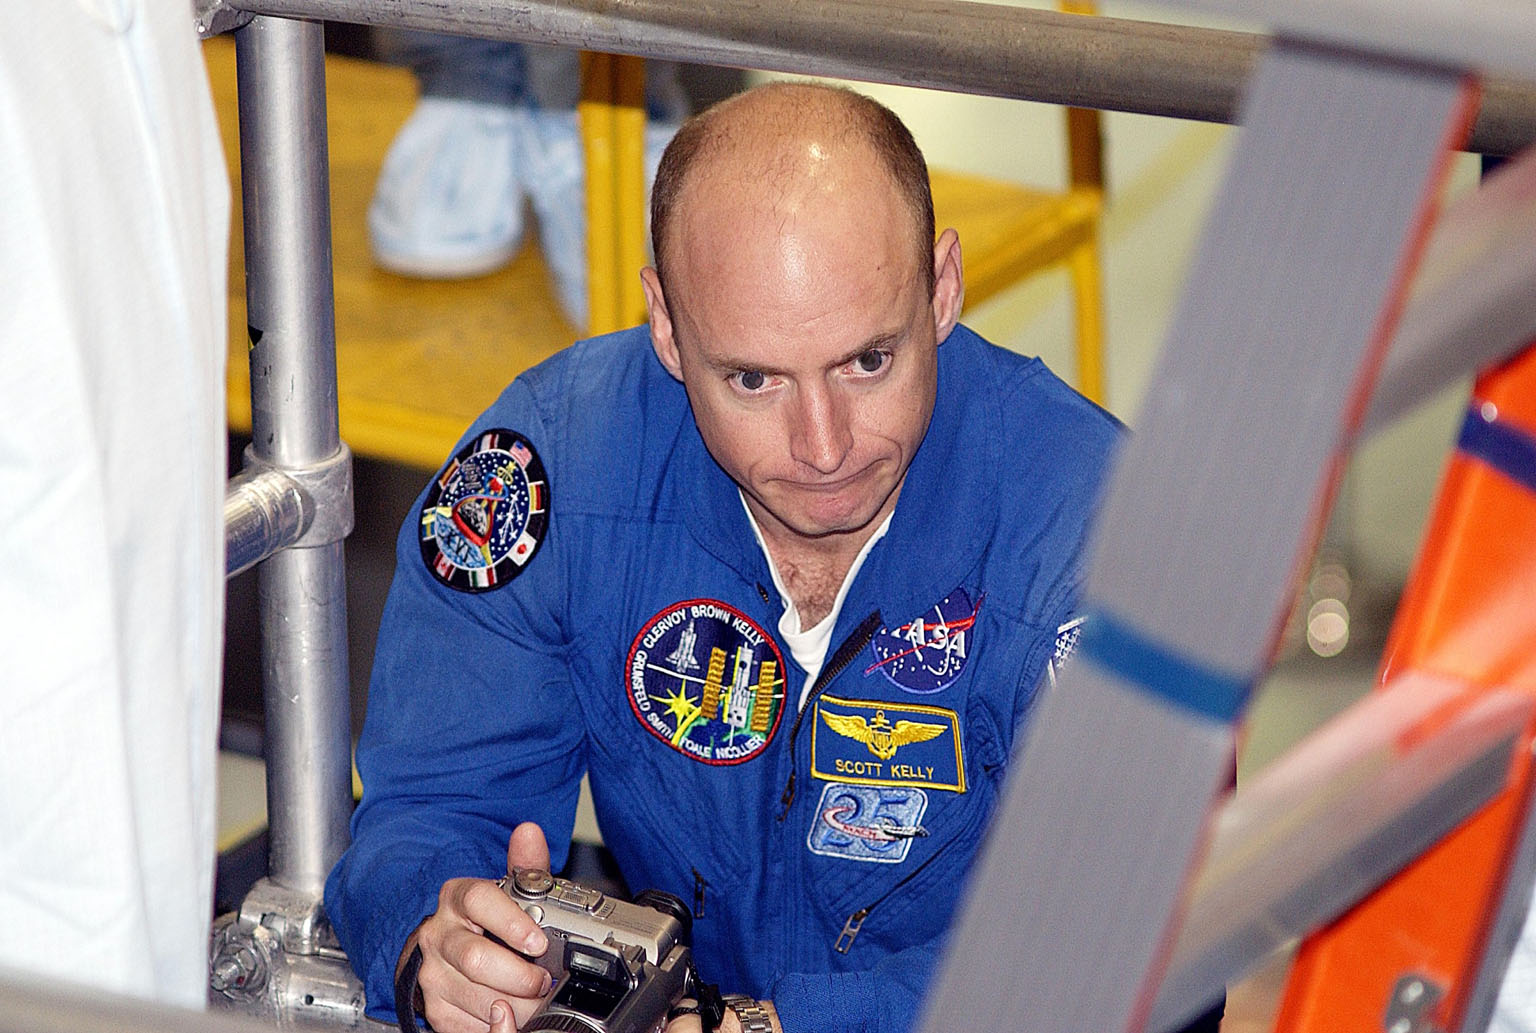 KENNEDY SPACE CENTER, FLA. - STS-118 Commander Scott Kelly holds a camera during training in the Space Station Processing Facility. He and other crew members are at KSC to become familiar with equipment for their mission. The mission will be delivering the third starboard truss segment, the ITS S5, to the International Space Station, and a SPACEHAB Single Cargo Module with supplies and equipment. Launch date is under review.